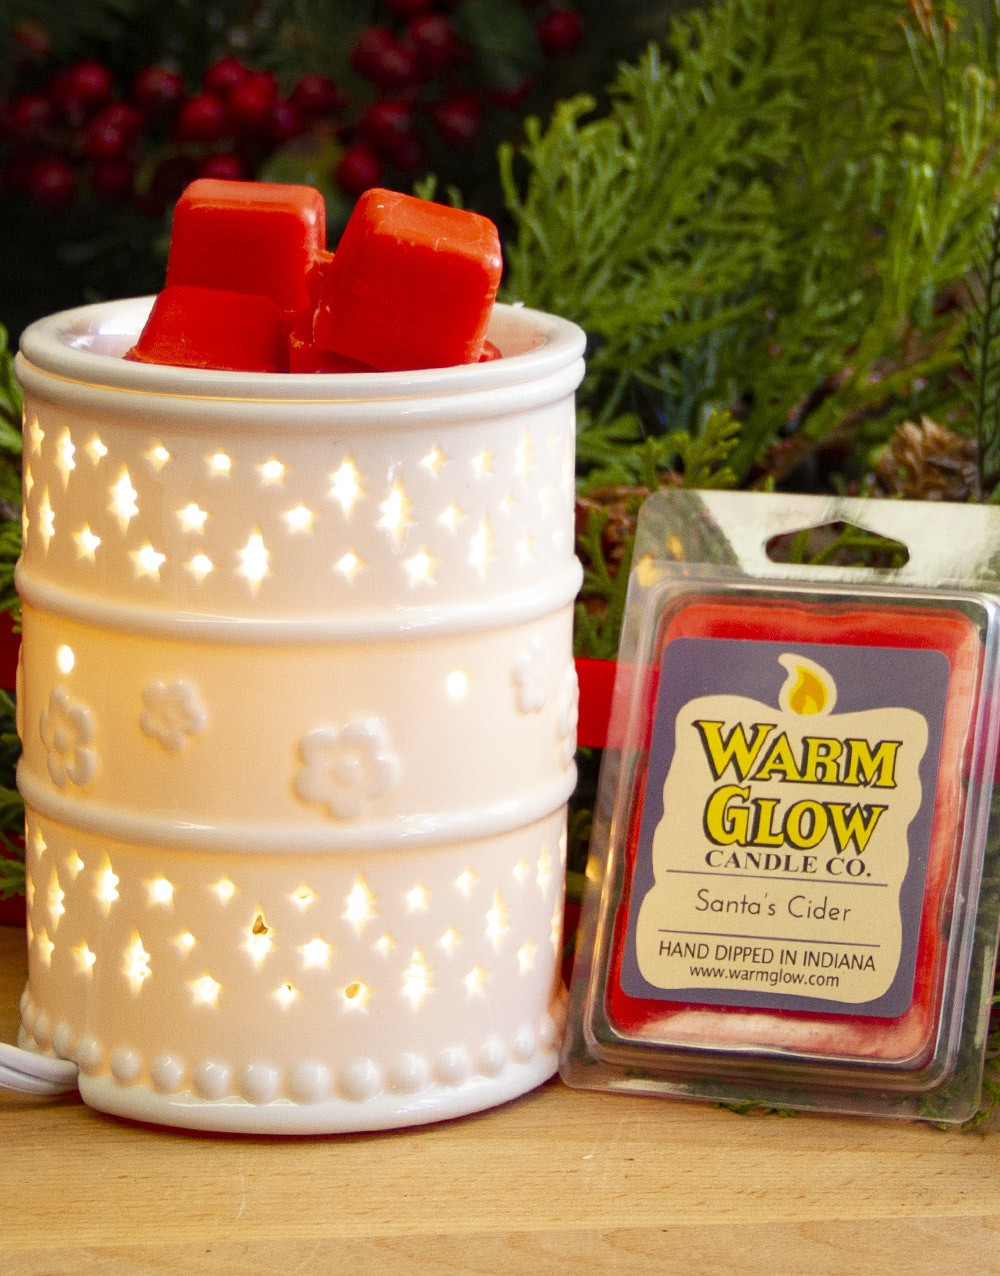 White Starlight Warmer